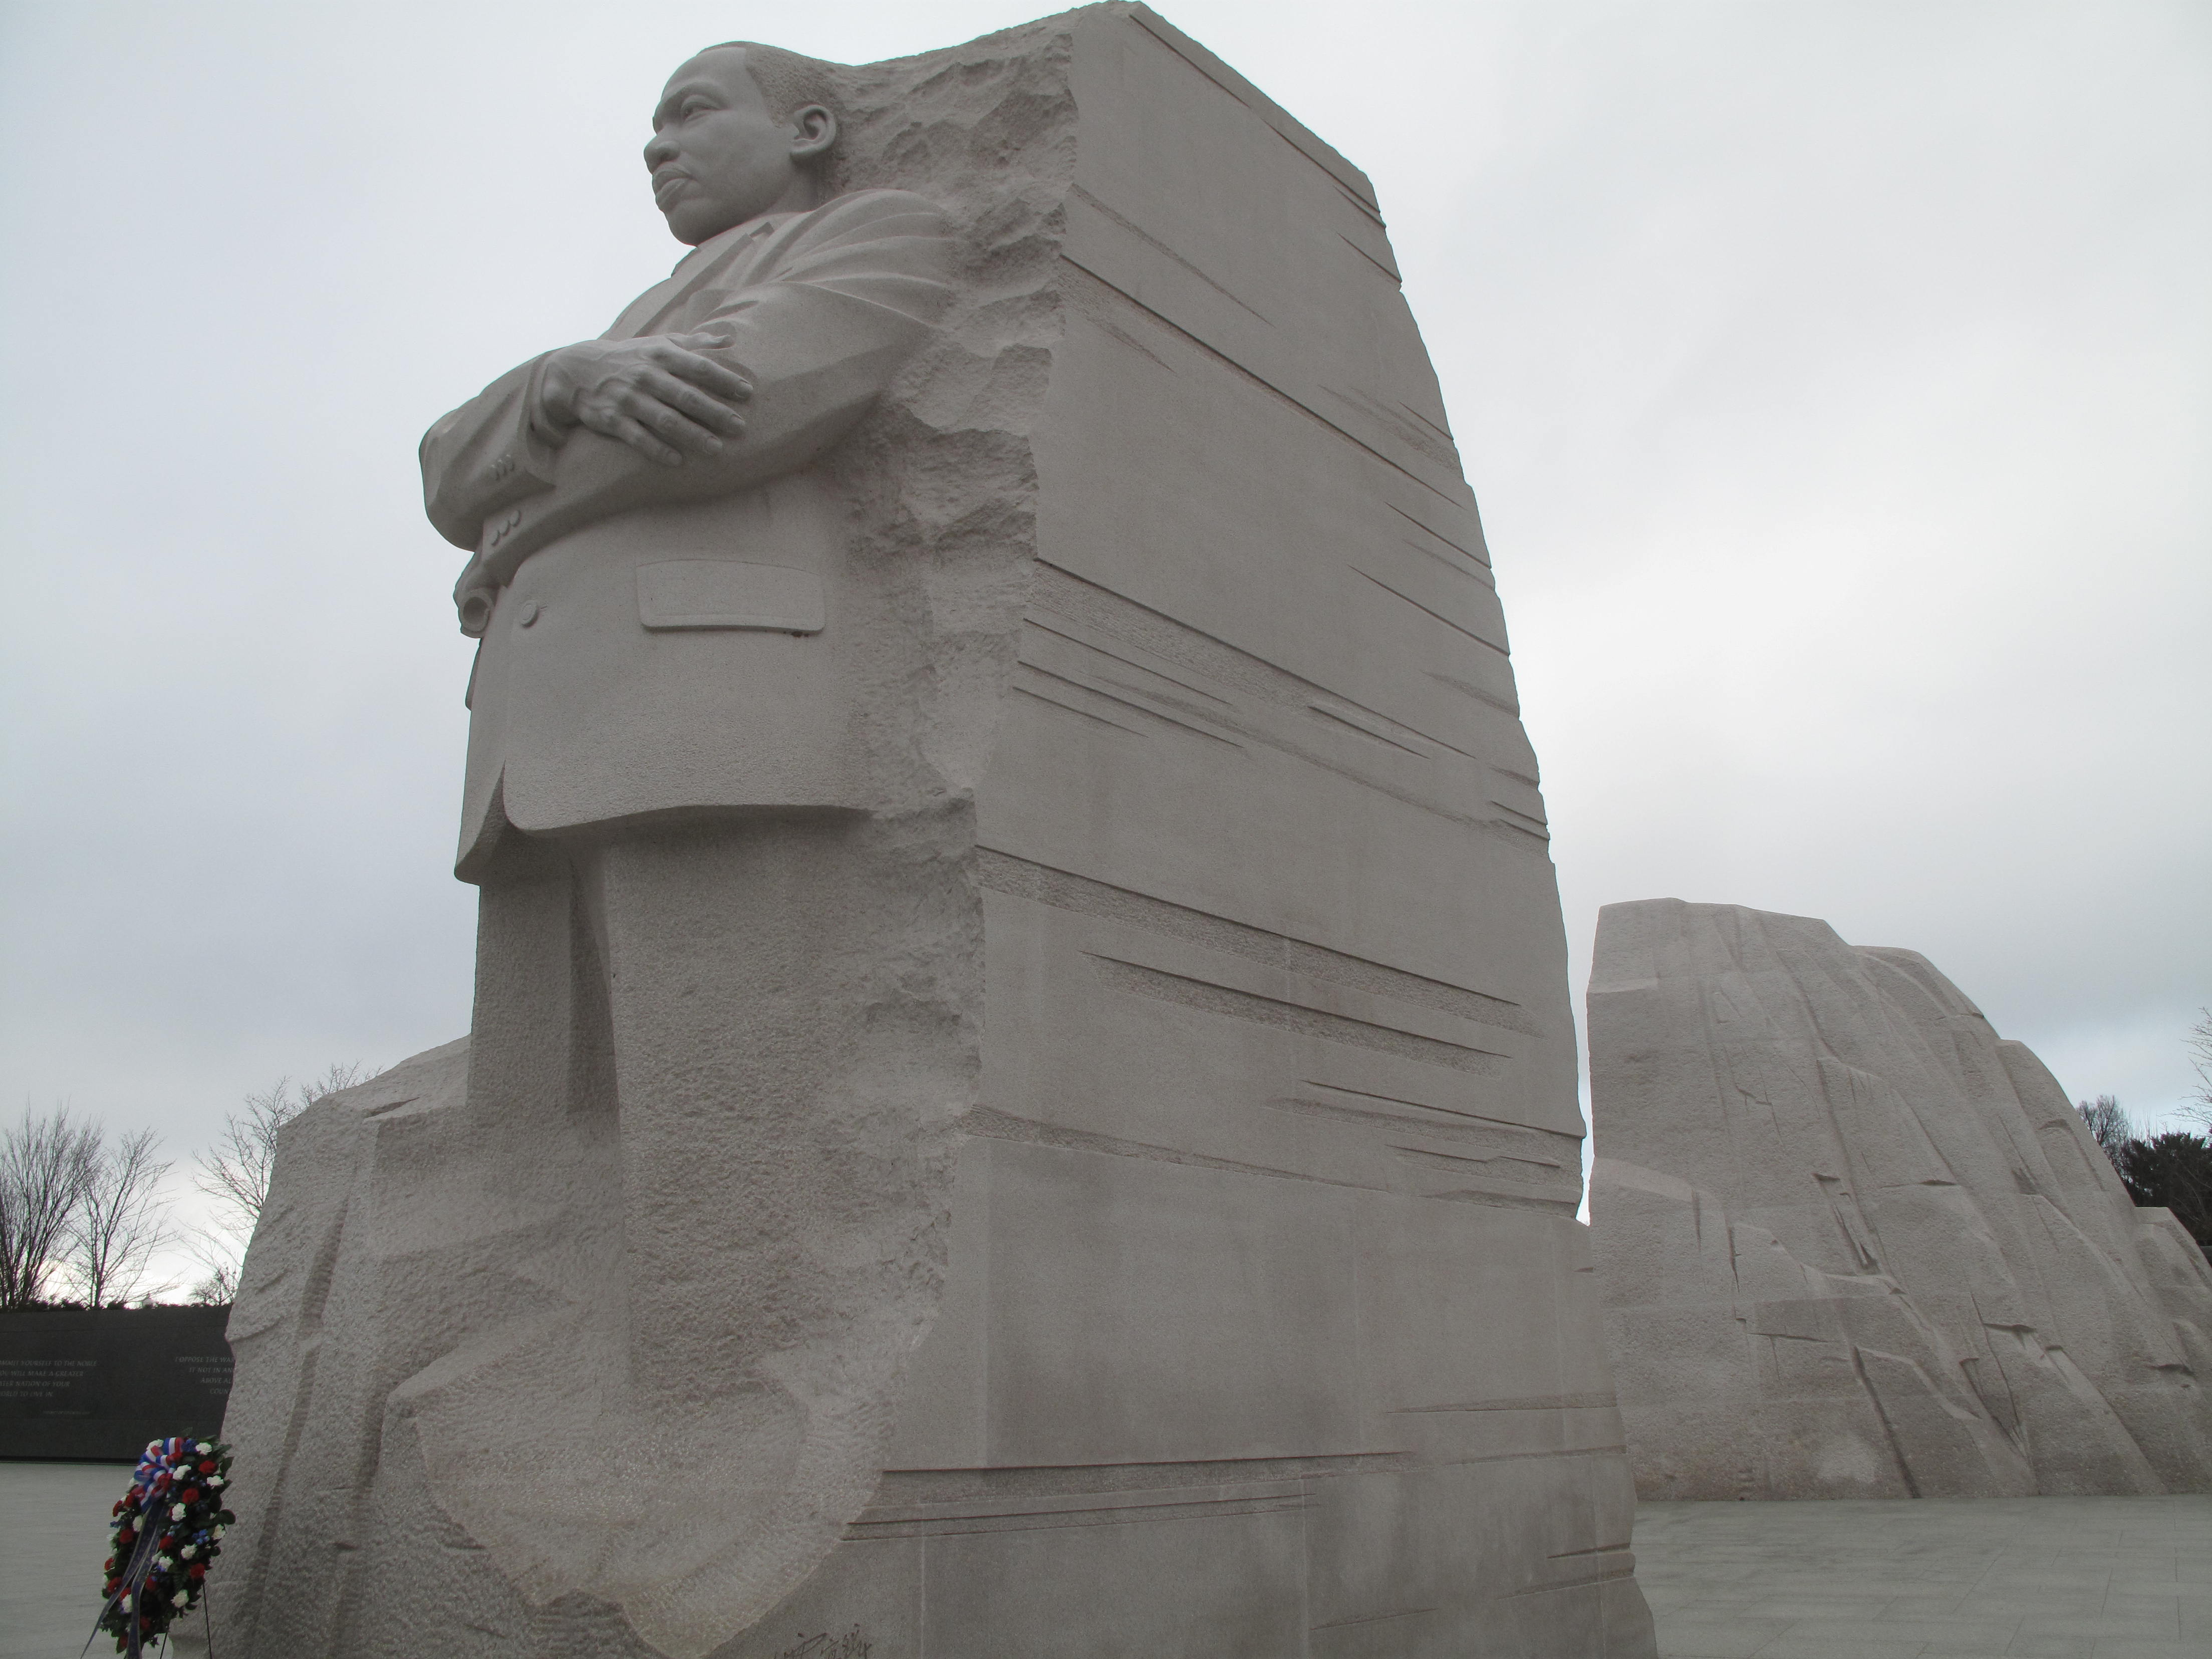 Memorial prepared for Martin Luther King Jr. Day